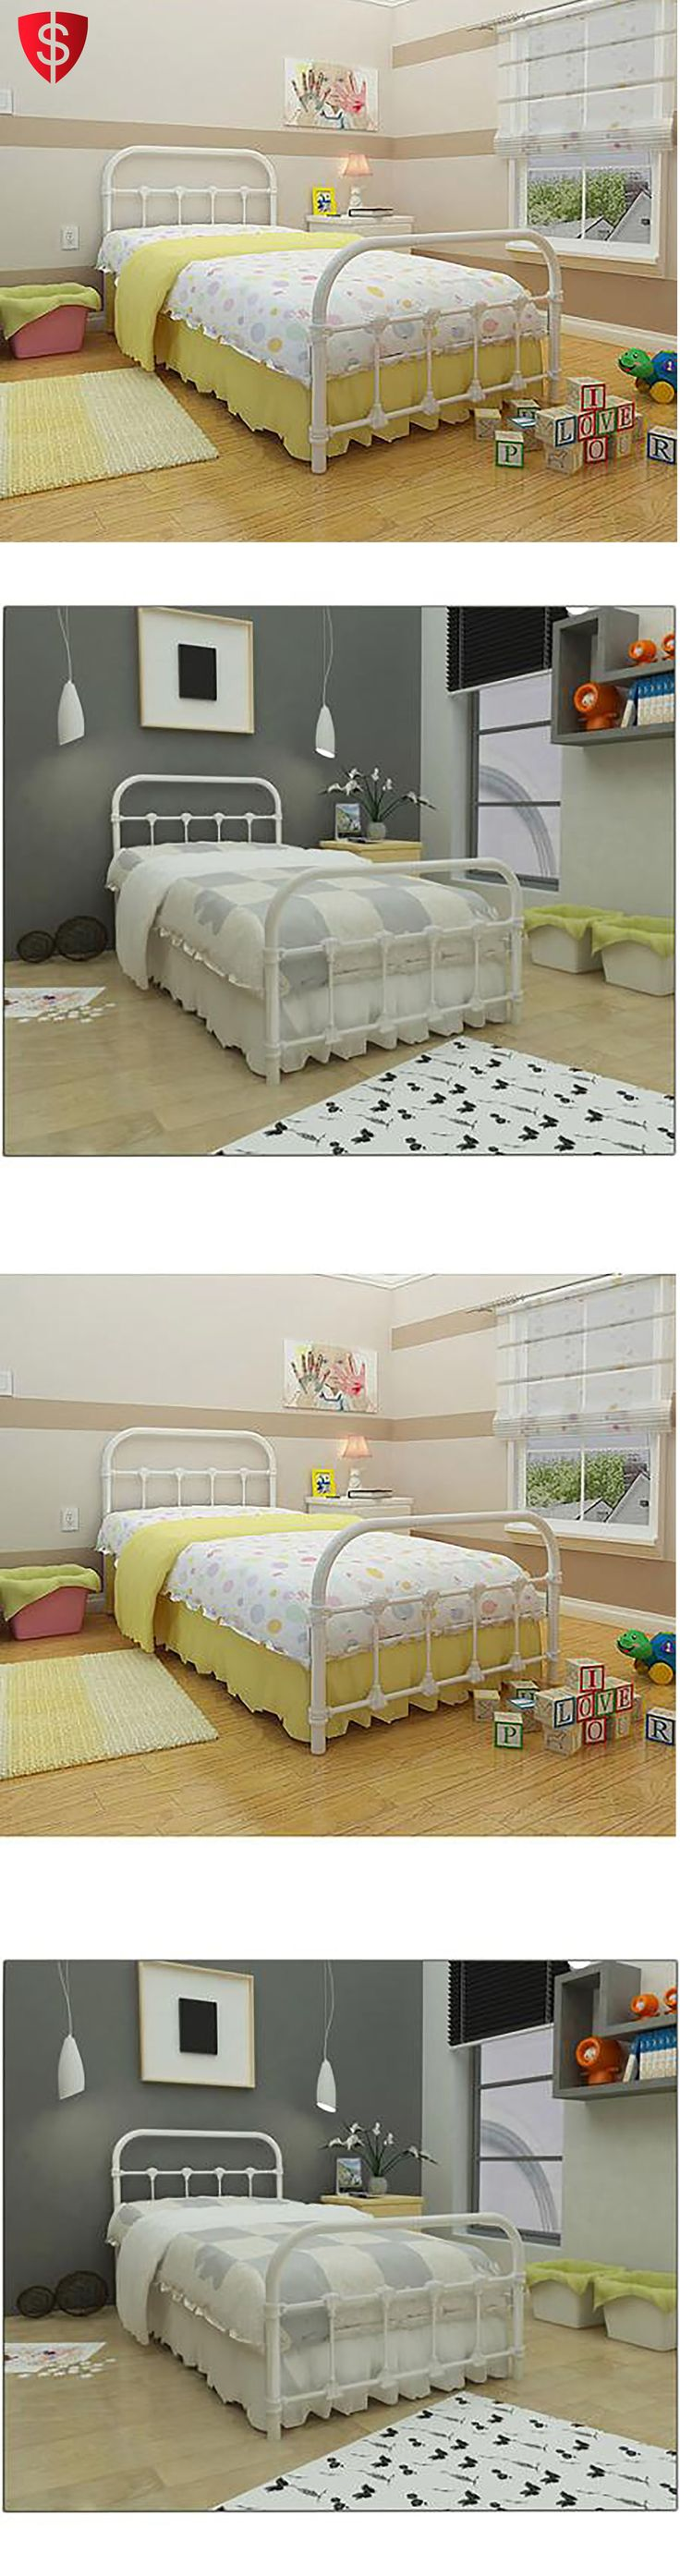 Beds and Bed Frames 175758: White Metal Twin Size Bed Frame Bedroom  Furniture Antique Victorian